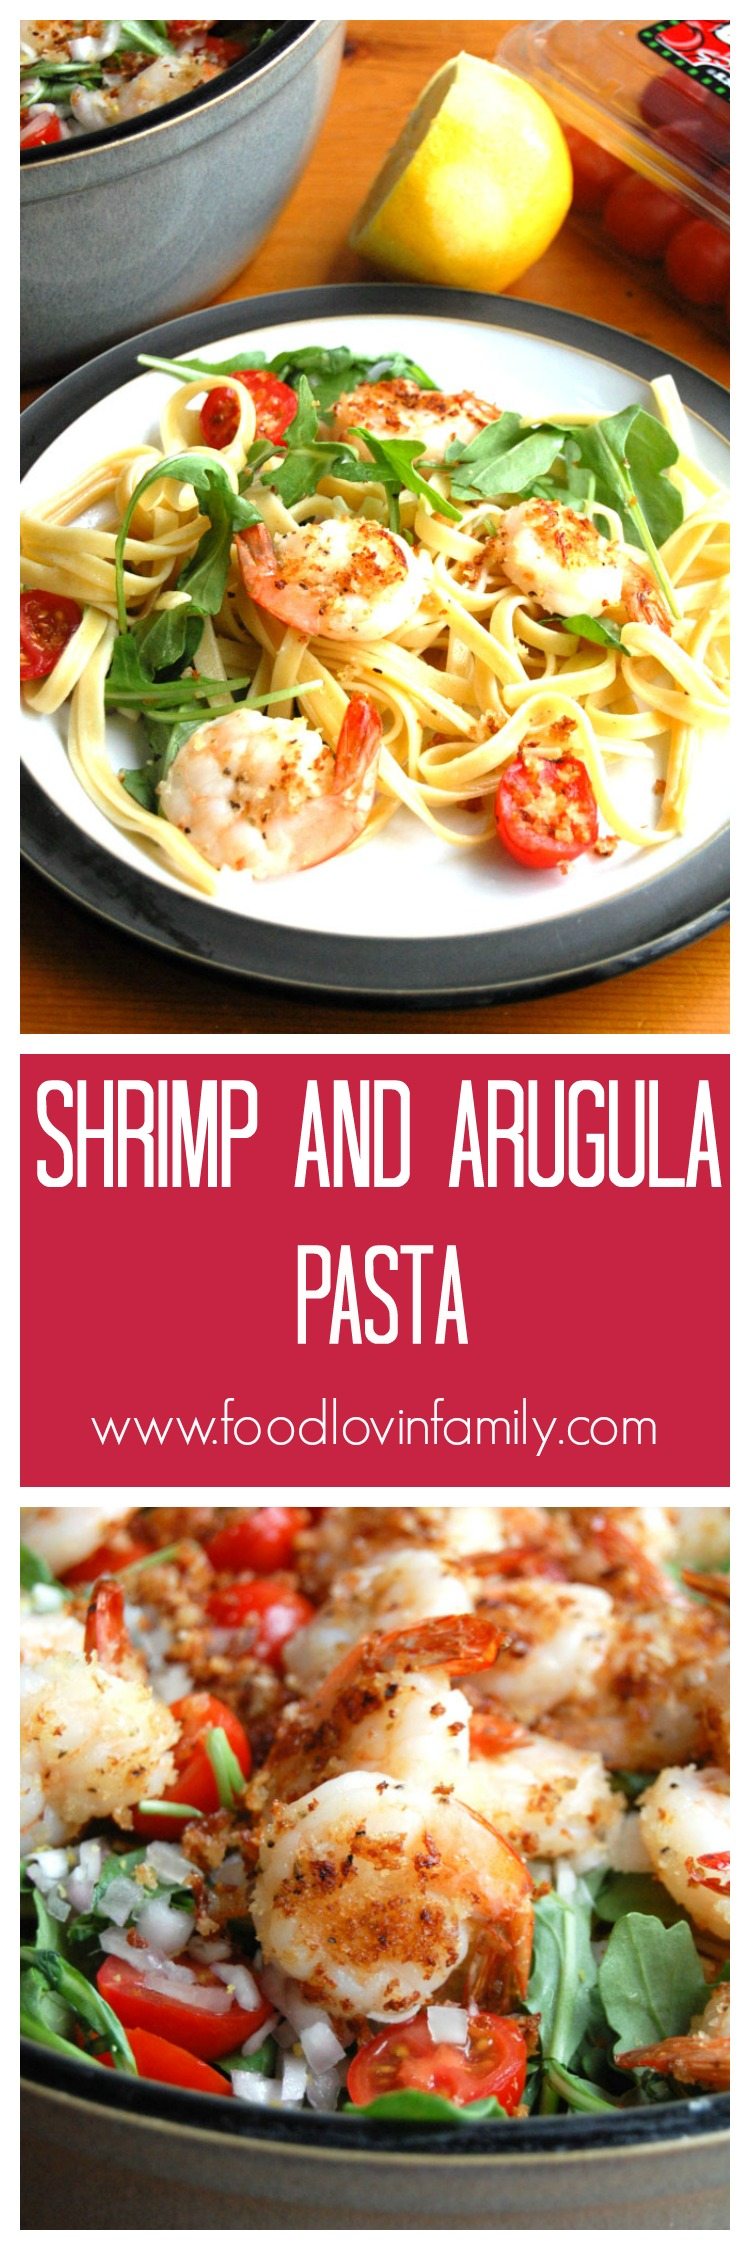 Shrimp and Arugula Pasta makes quick and healthy meal.